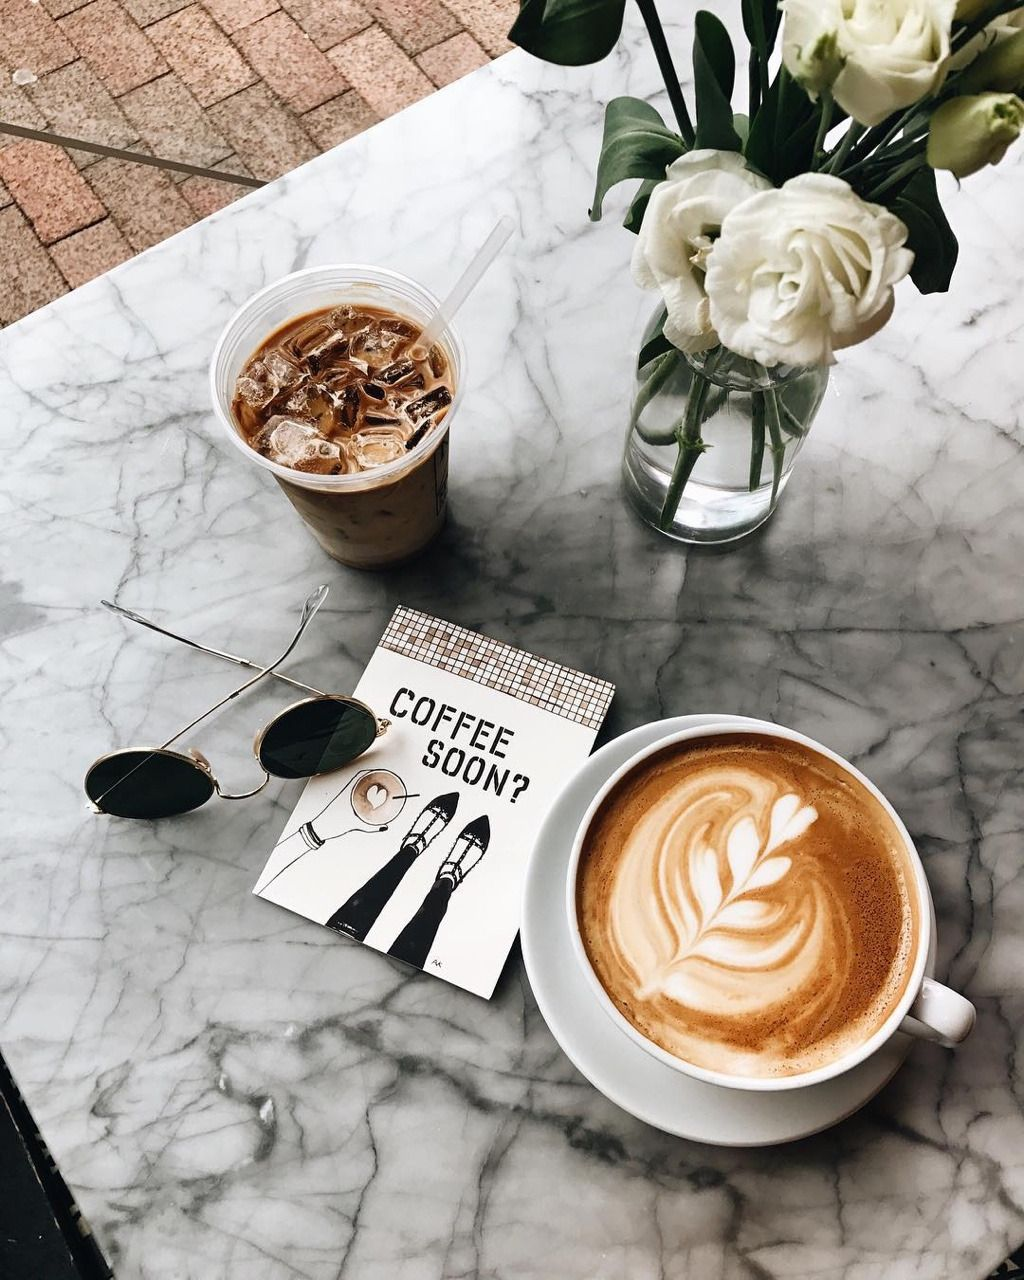 Cute Marble Table Top With Latte And Iced Coffee Atop